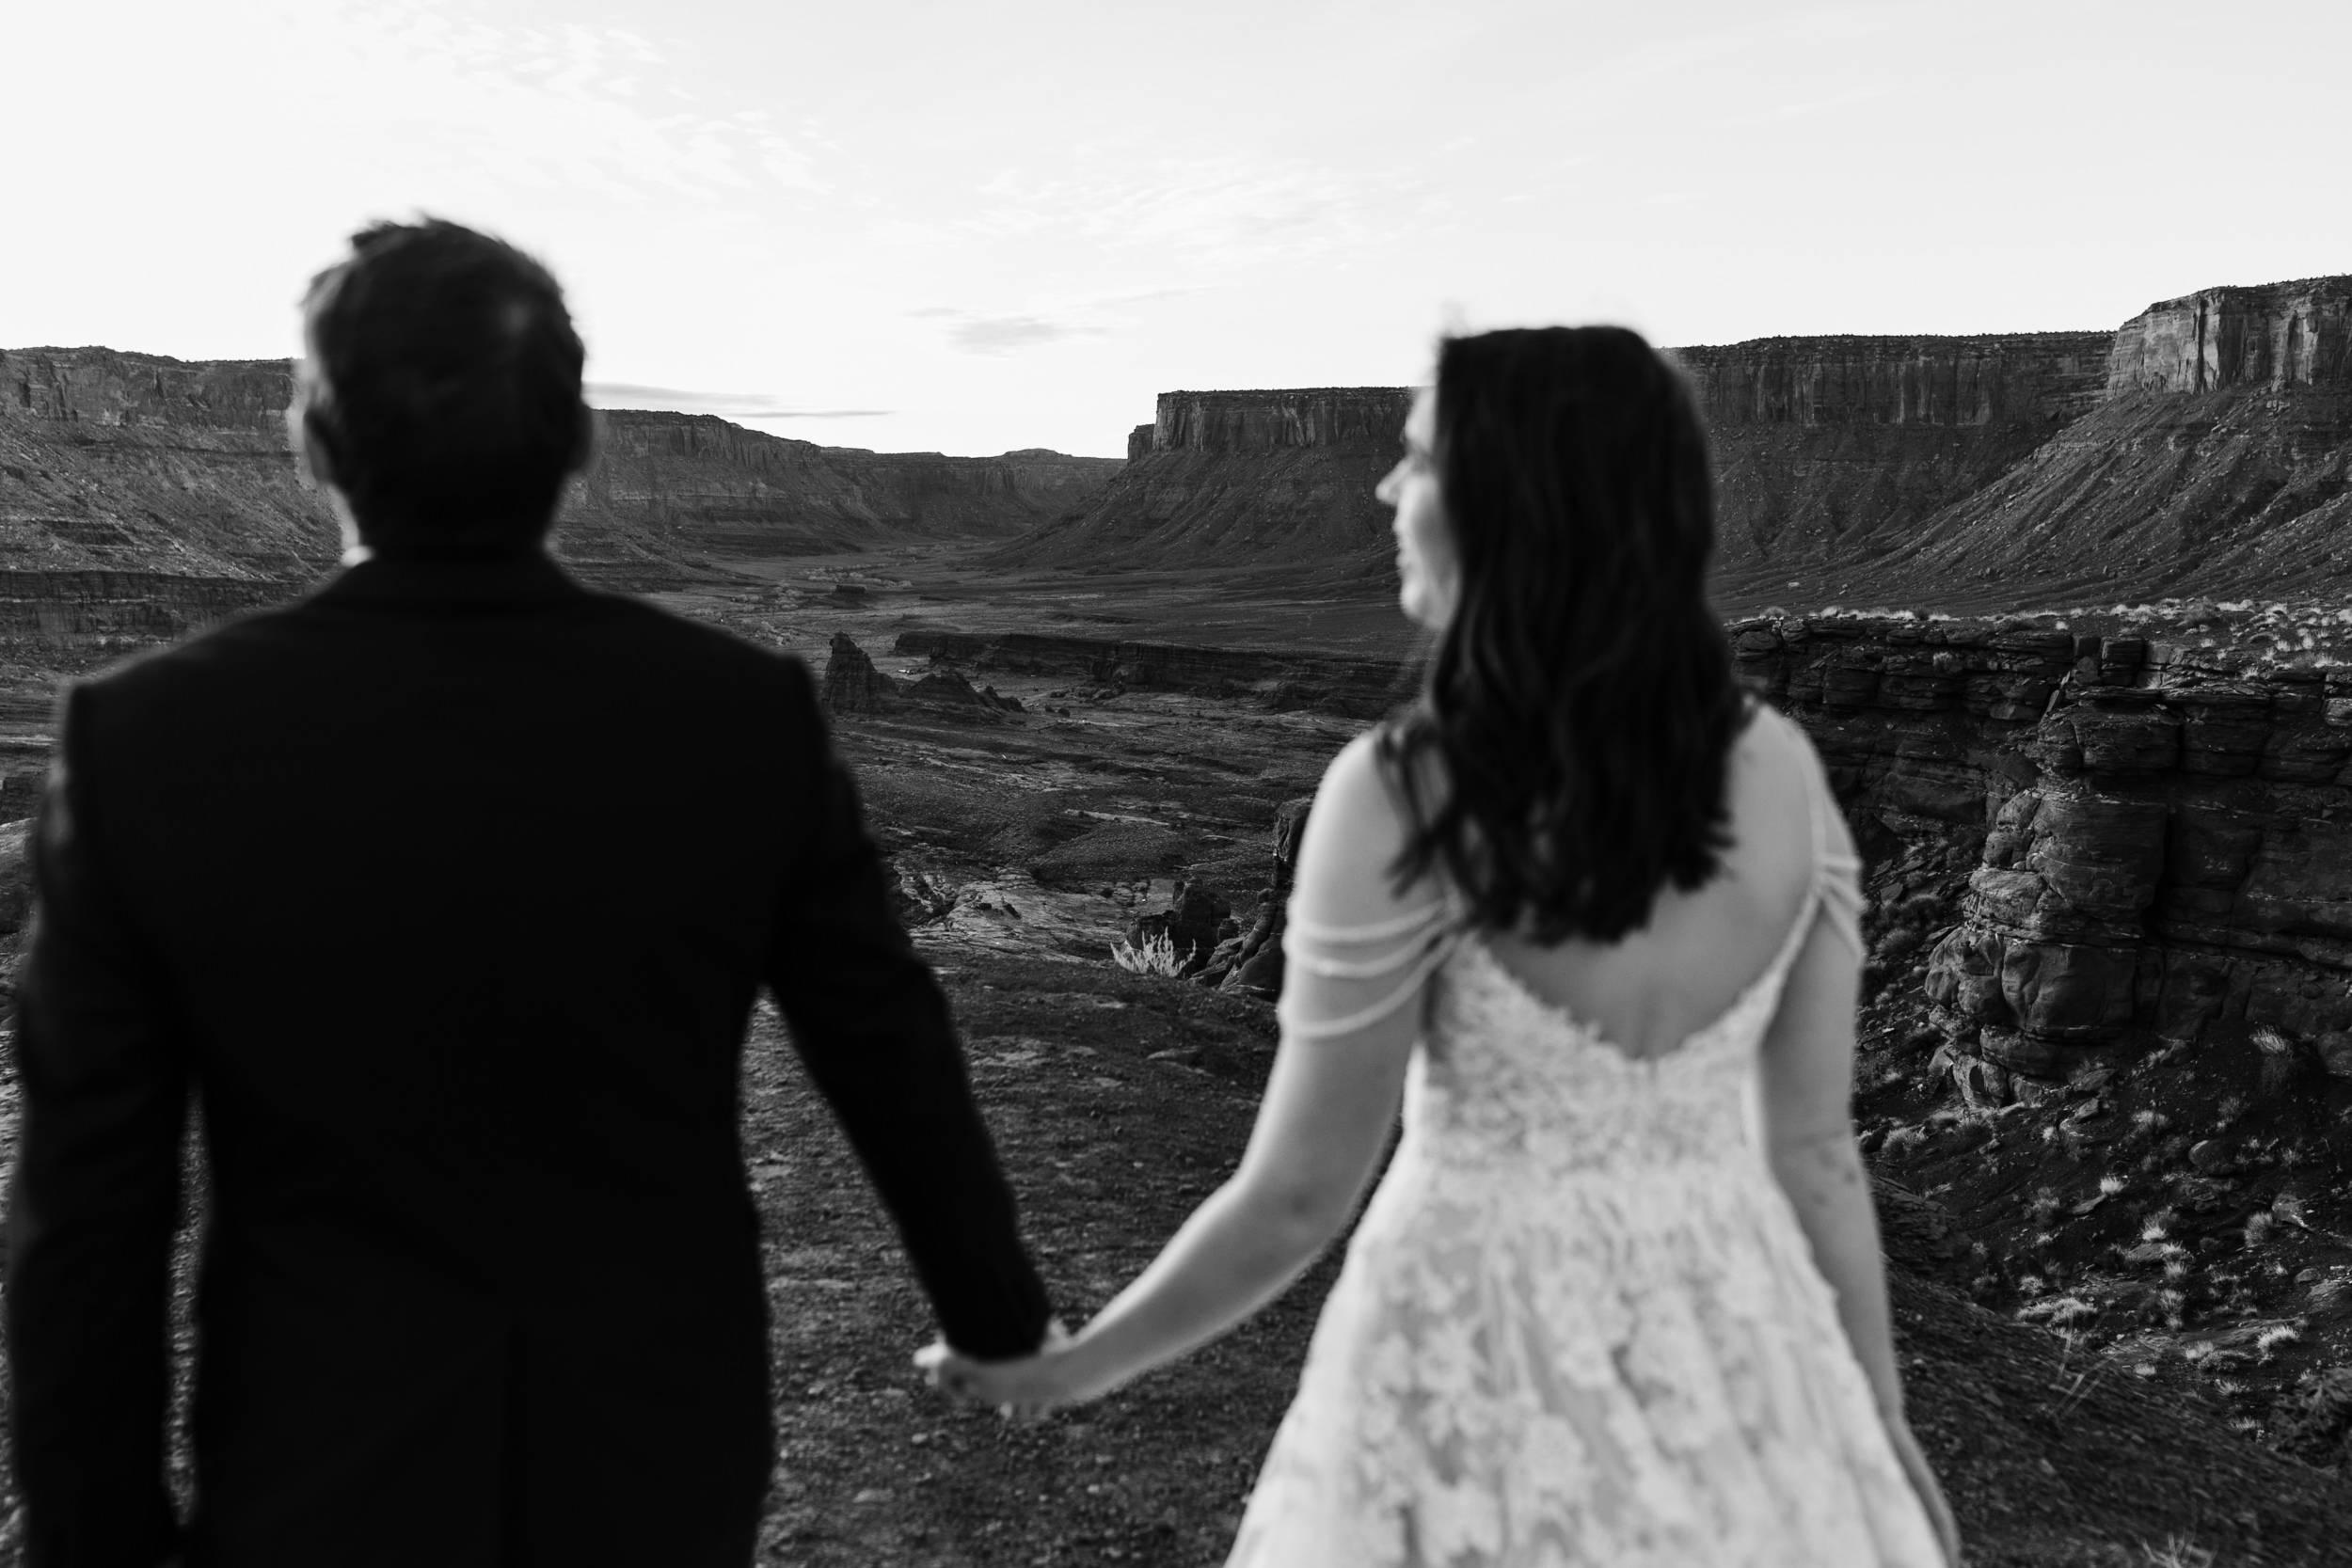 Our couples have so much fun exploring the desert on their wedding day!